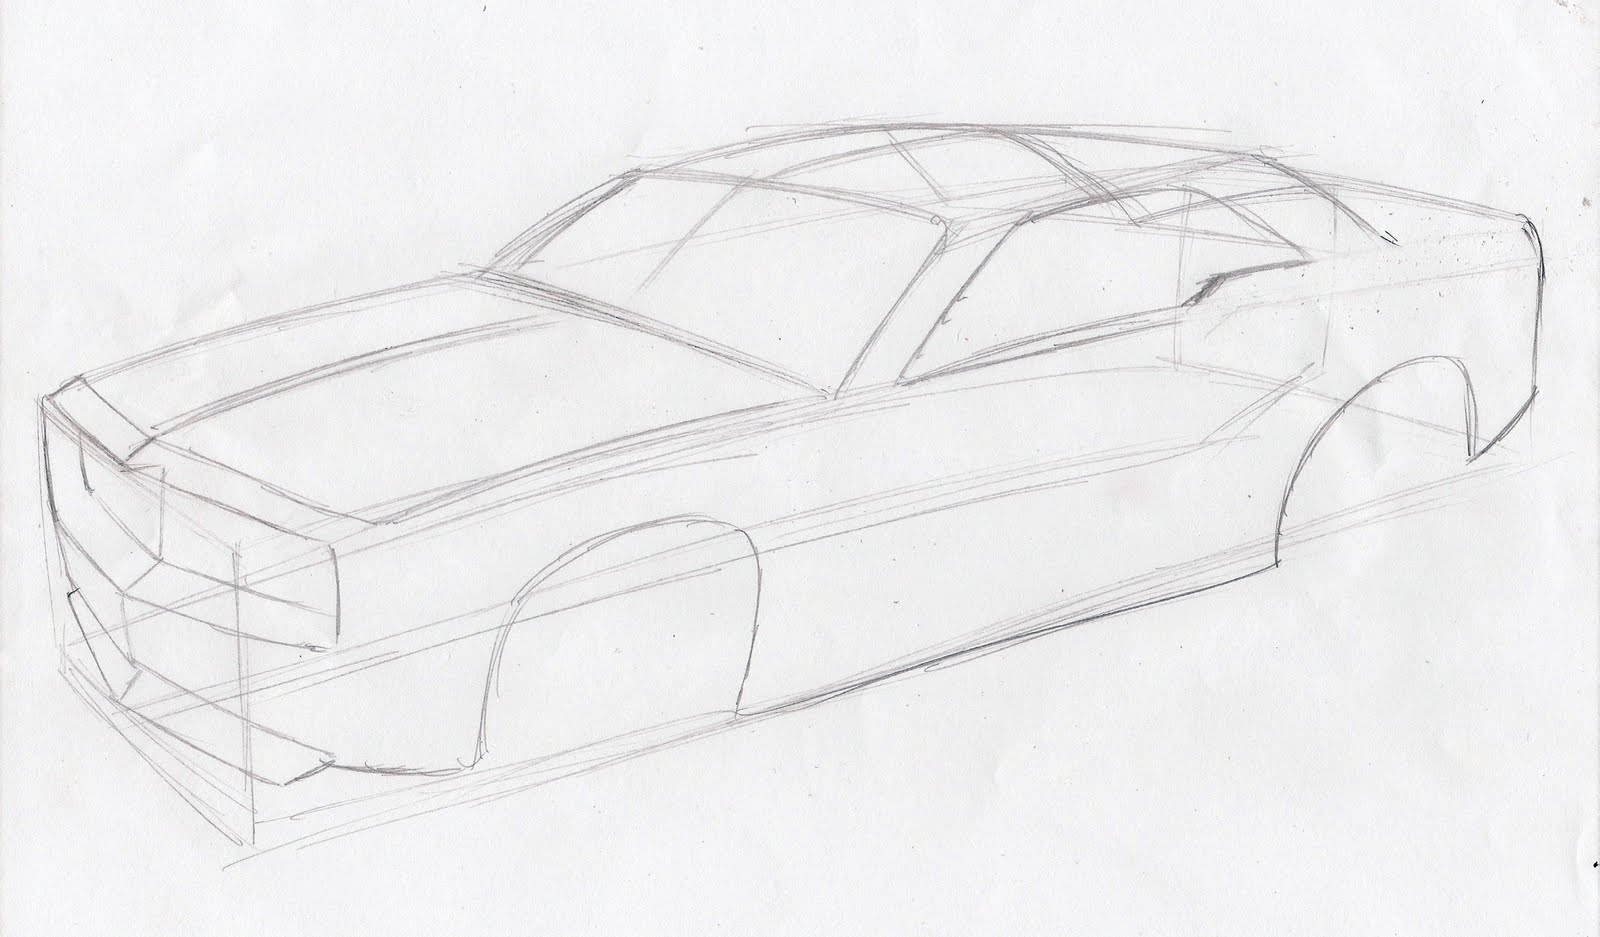 Piece souscat furthermore  likewise How To Draw Muscle Car together with How To Draw A Ford Mustang in addition 201340958723. on s and car grills